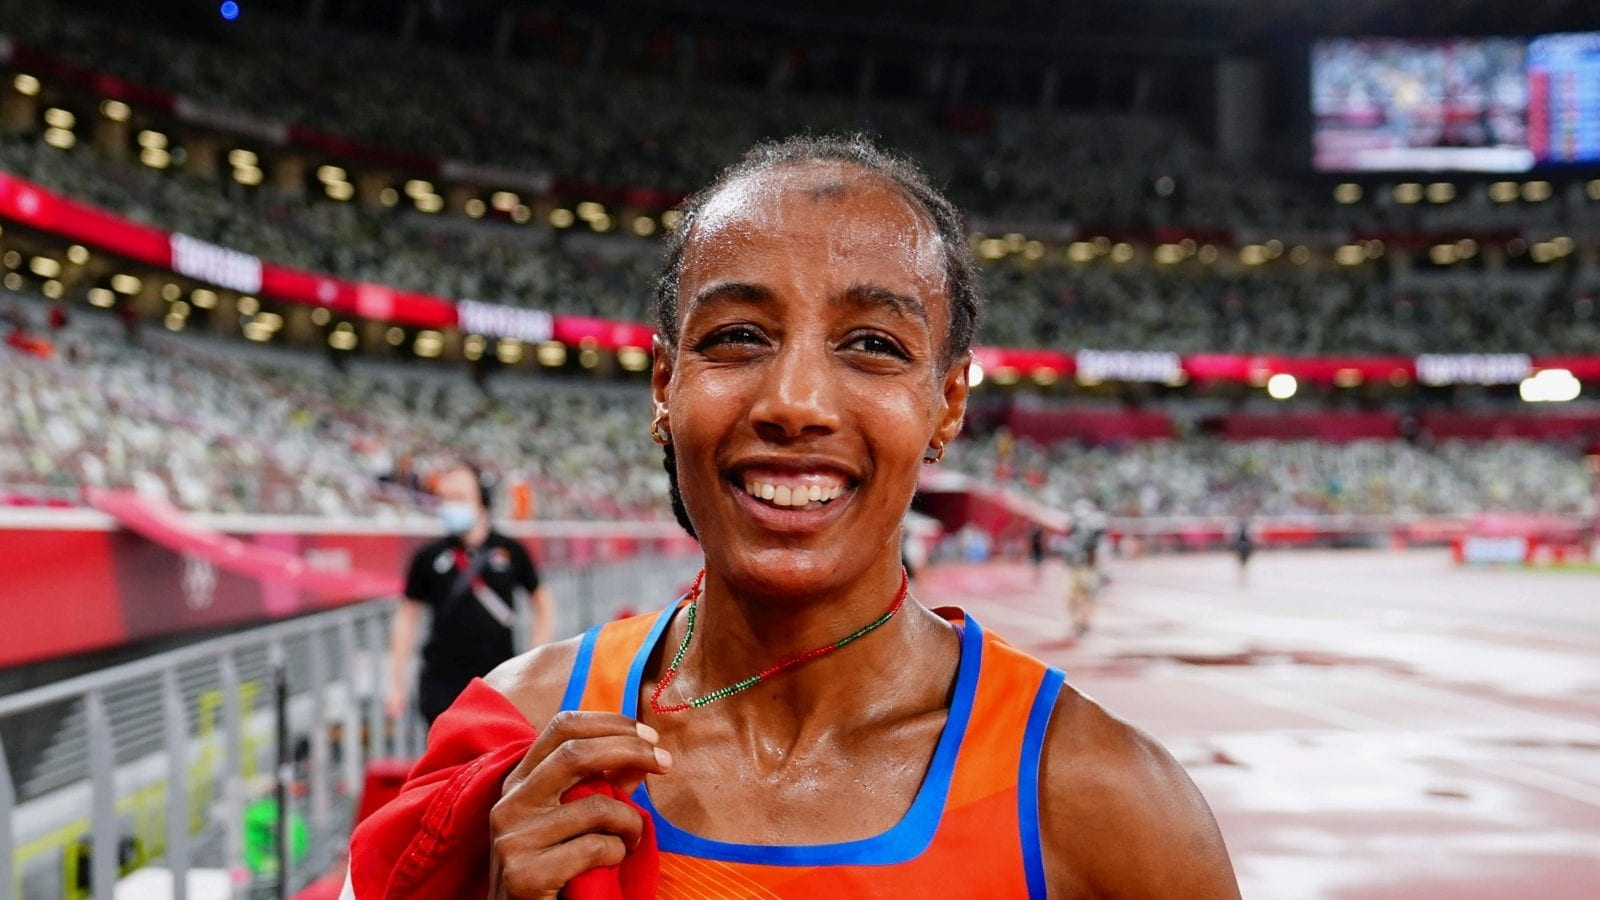 'Scared' Sifan Hassan Wins Olympic 5,000m in First Step in Treble Gold Bid